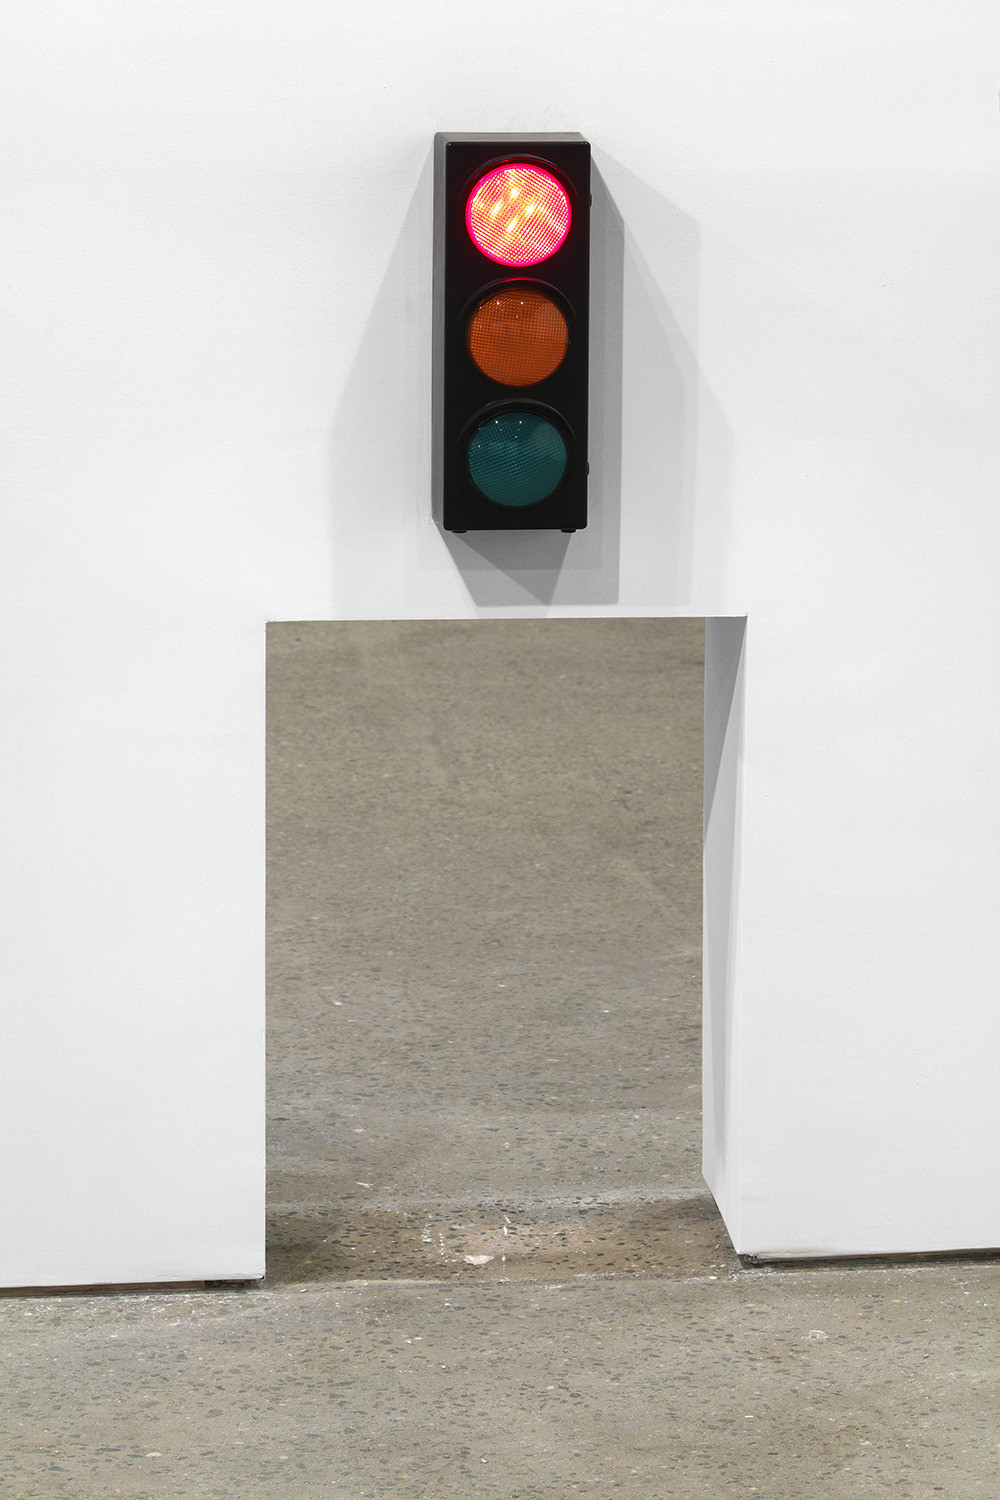 David Shrigley, Hole with Traffic Lights, 2013, Traffic light and hole in drywall, Variable Courtesy Anton Kern Gallery, New York